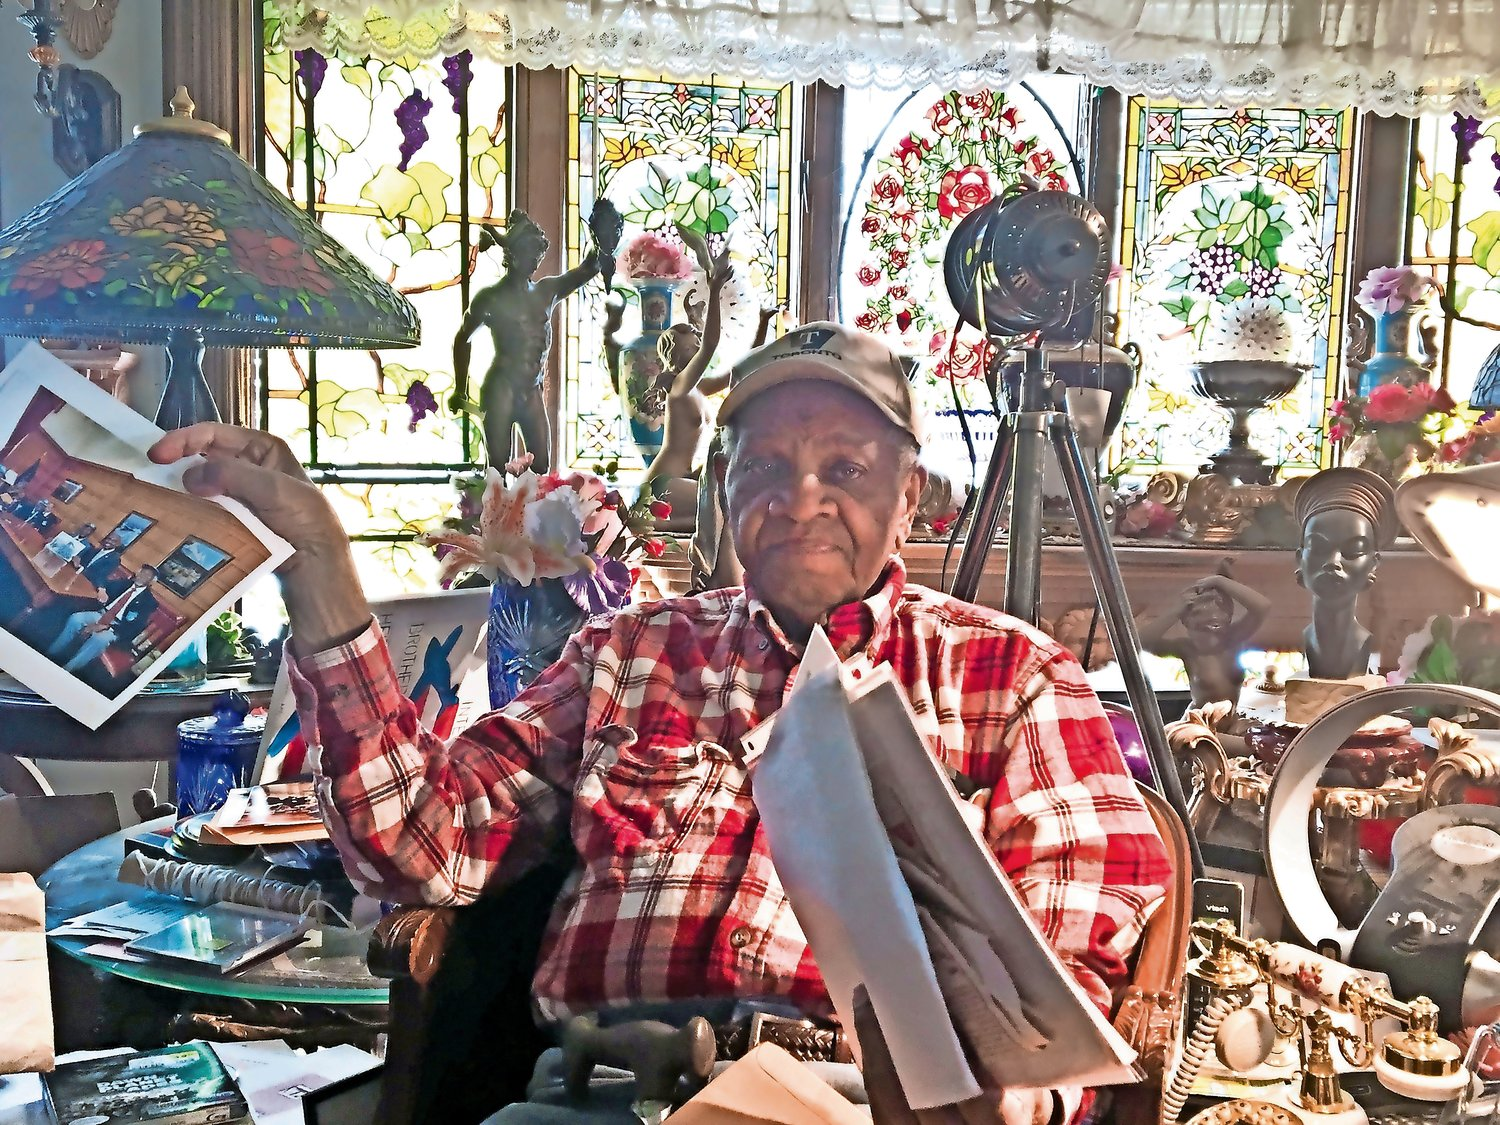 Joe Johnson, a member of the famed Tuskegee Airmen, loves nature, and the interior and exterior of his Glen Cove home reflect that love.